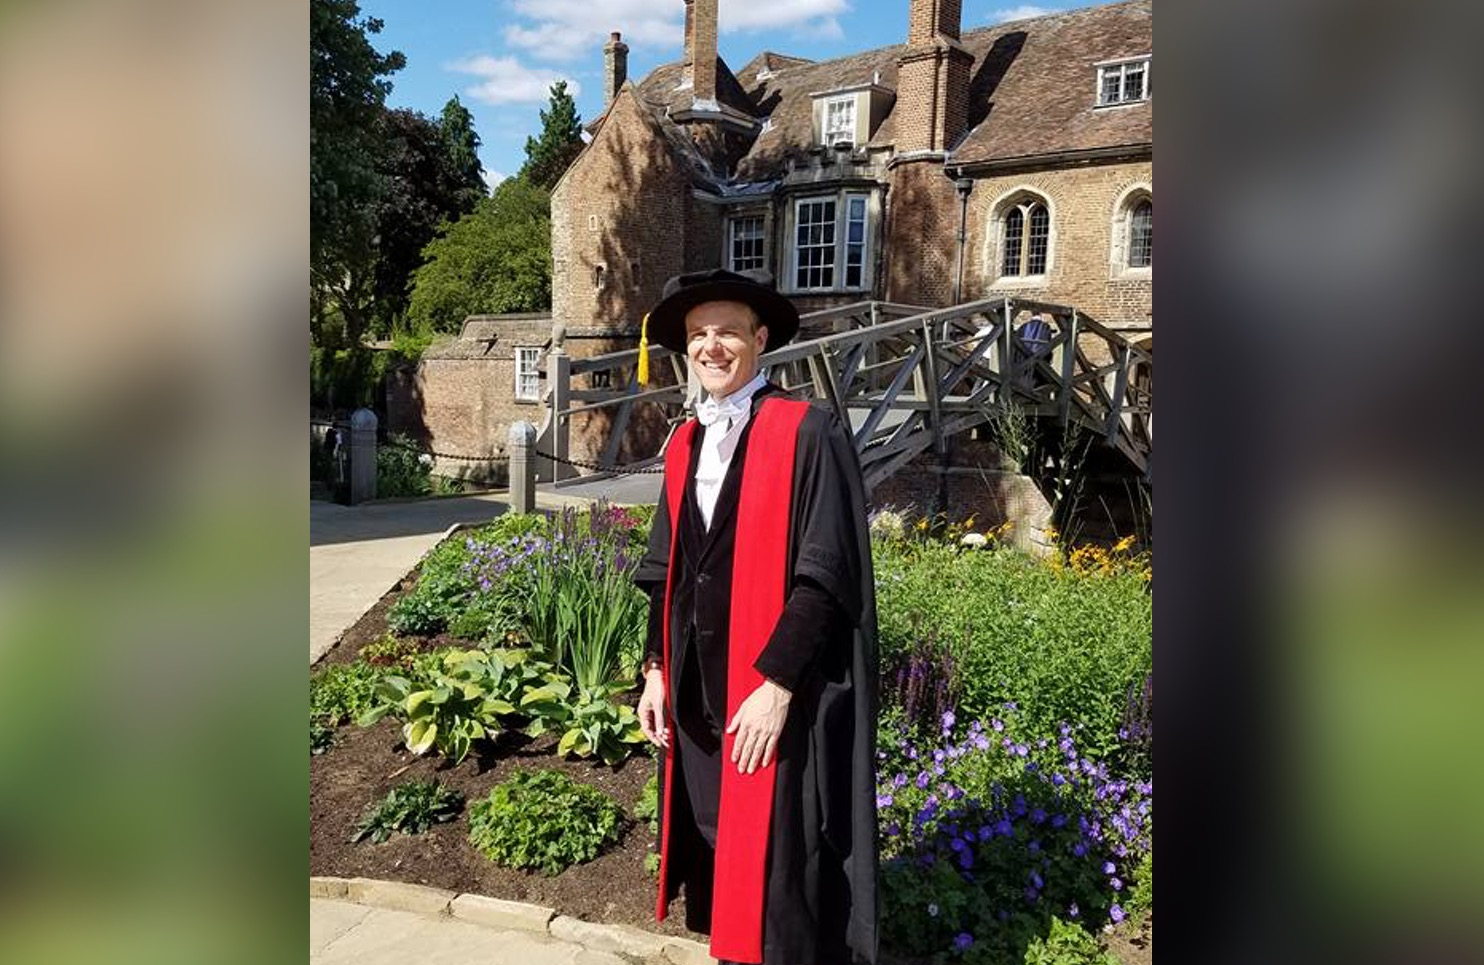 Kester's PhD graduation from the University of Cambridge in 2017